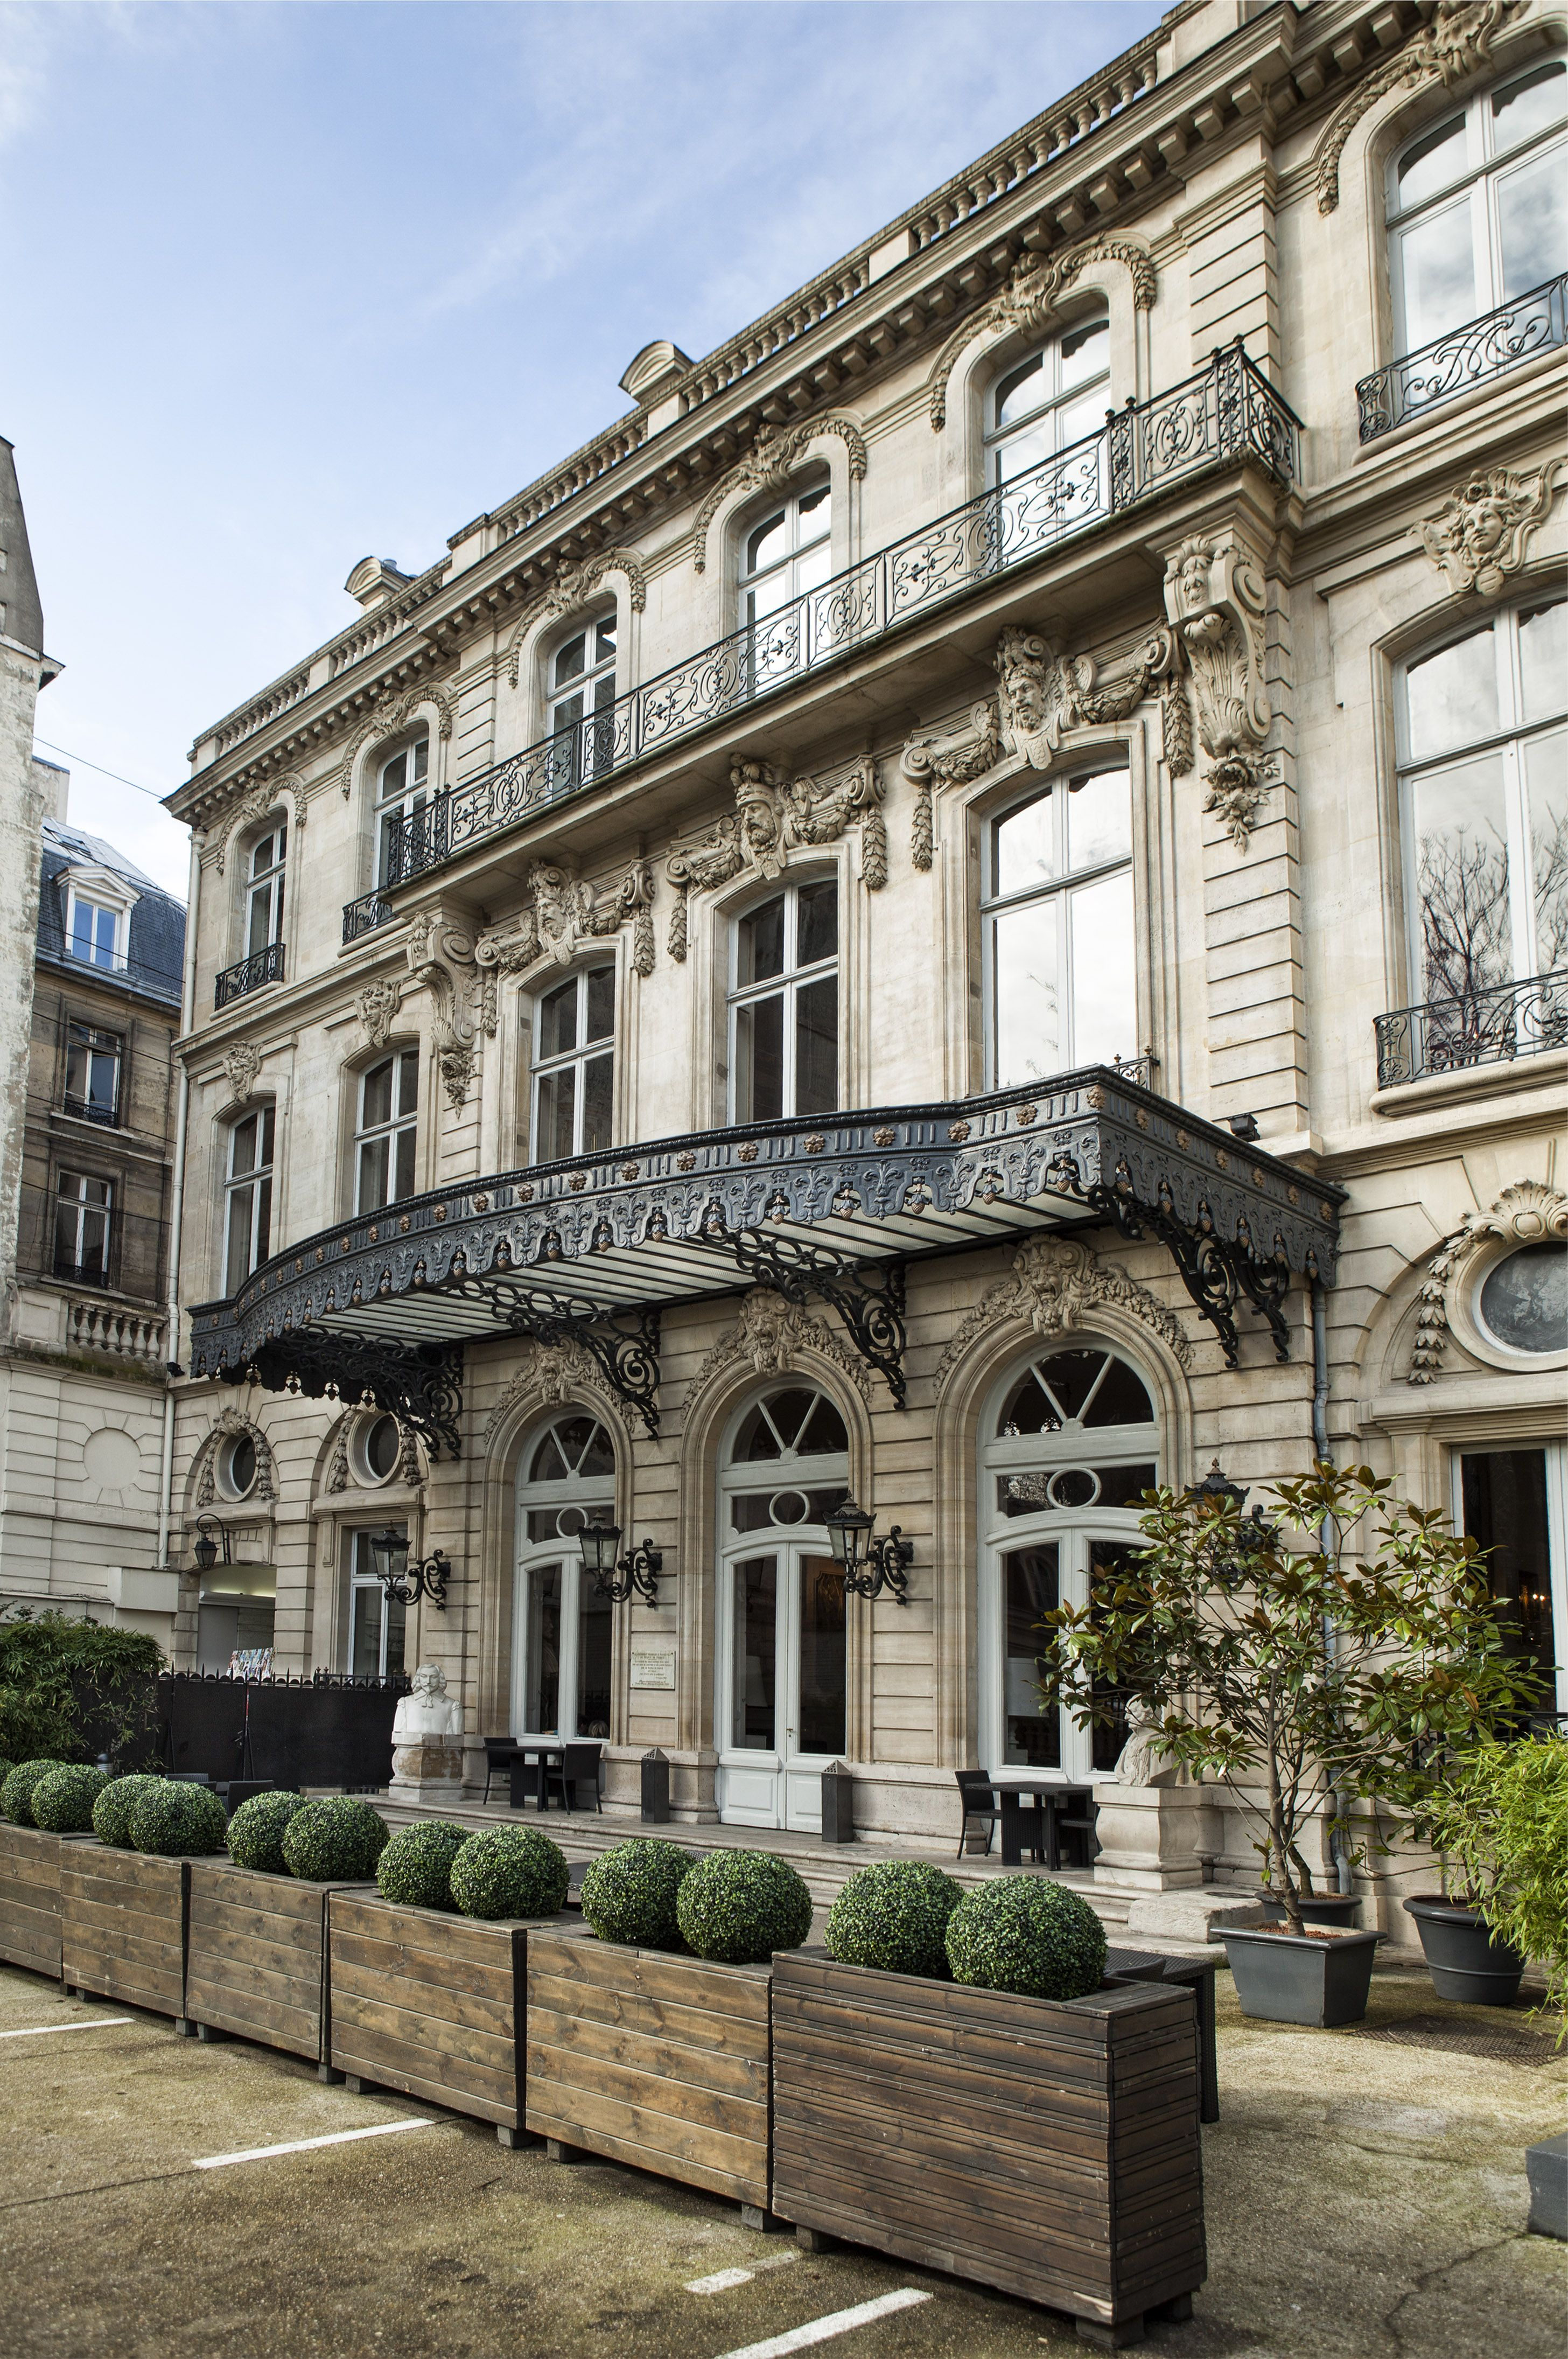 Salons france am riques h tel le marois paris pinterest france luxury homes and paris - Salon france amerique paris 8 ...